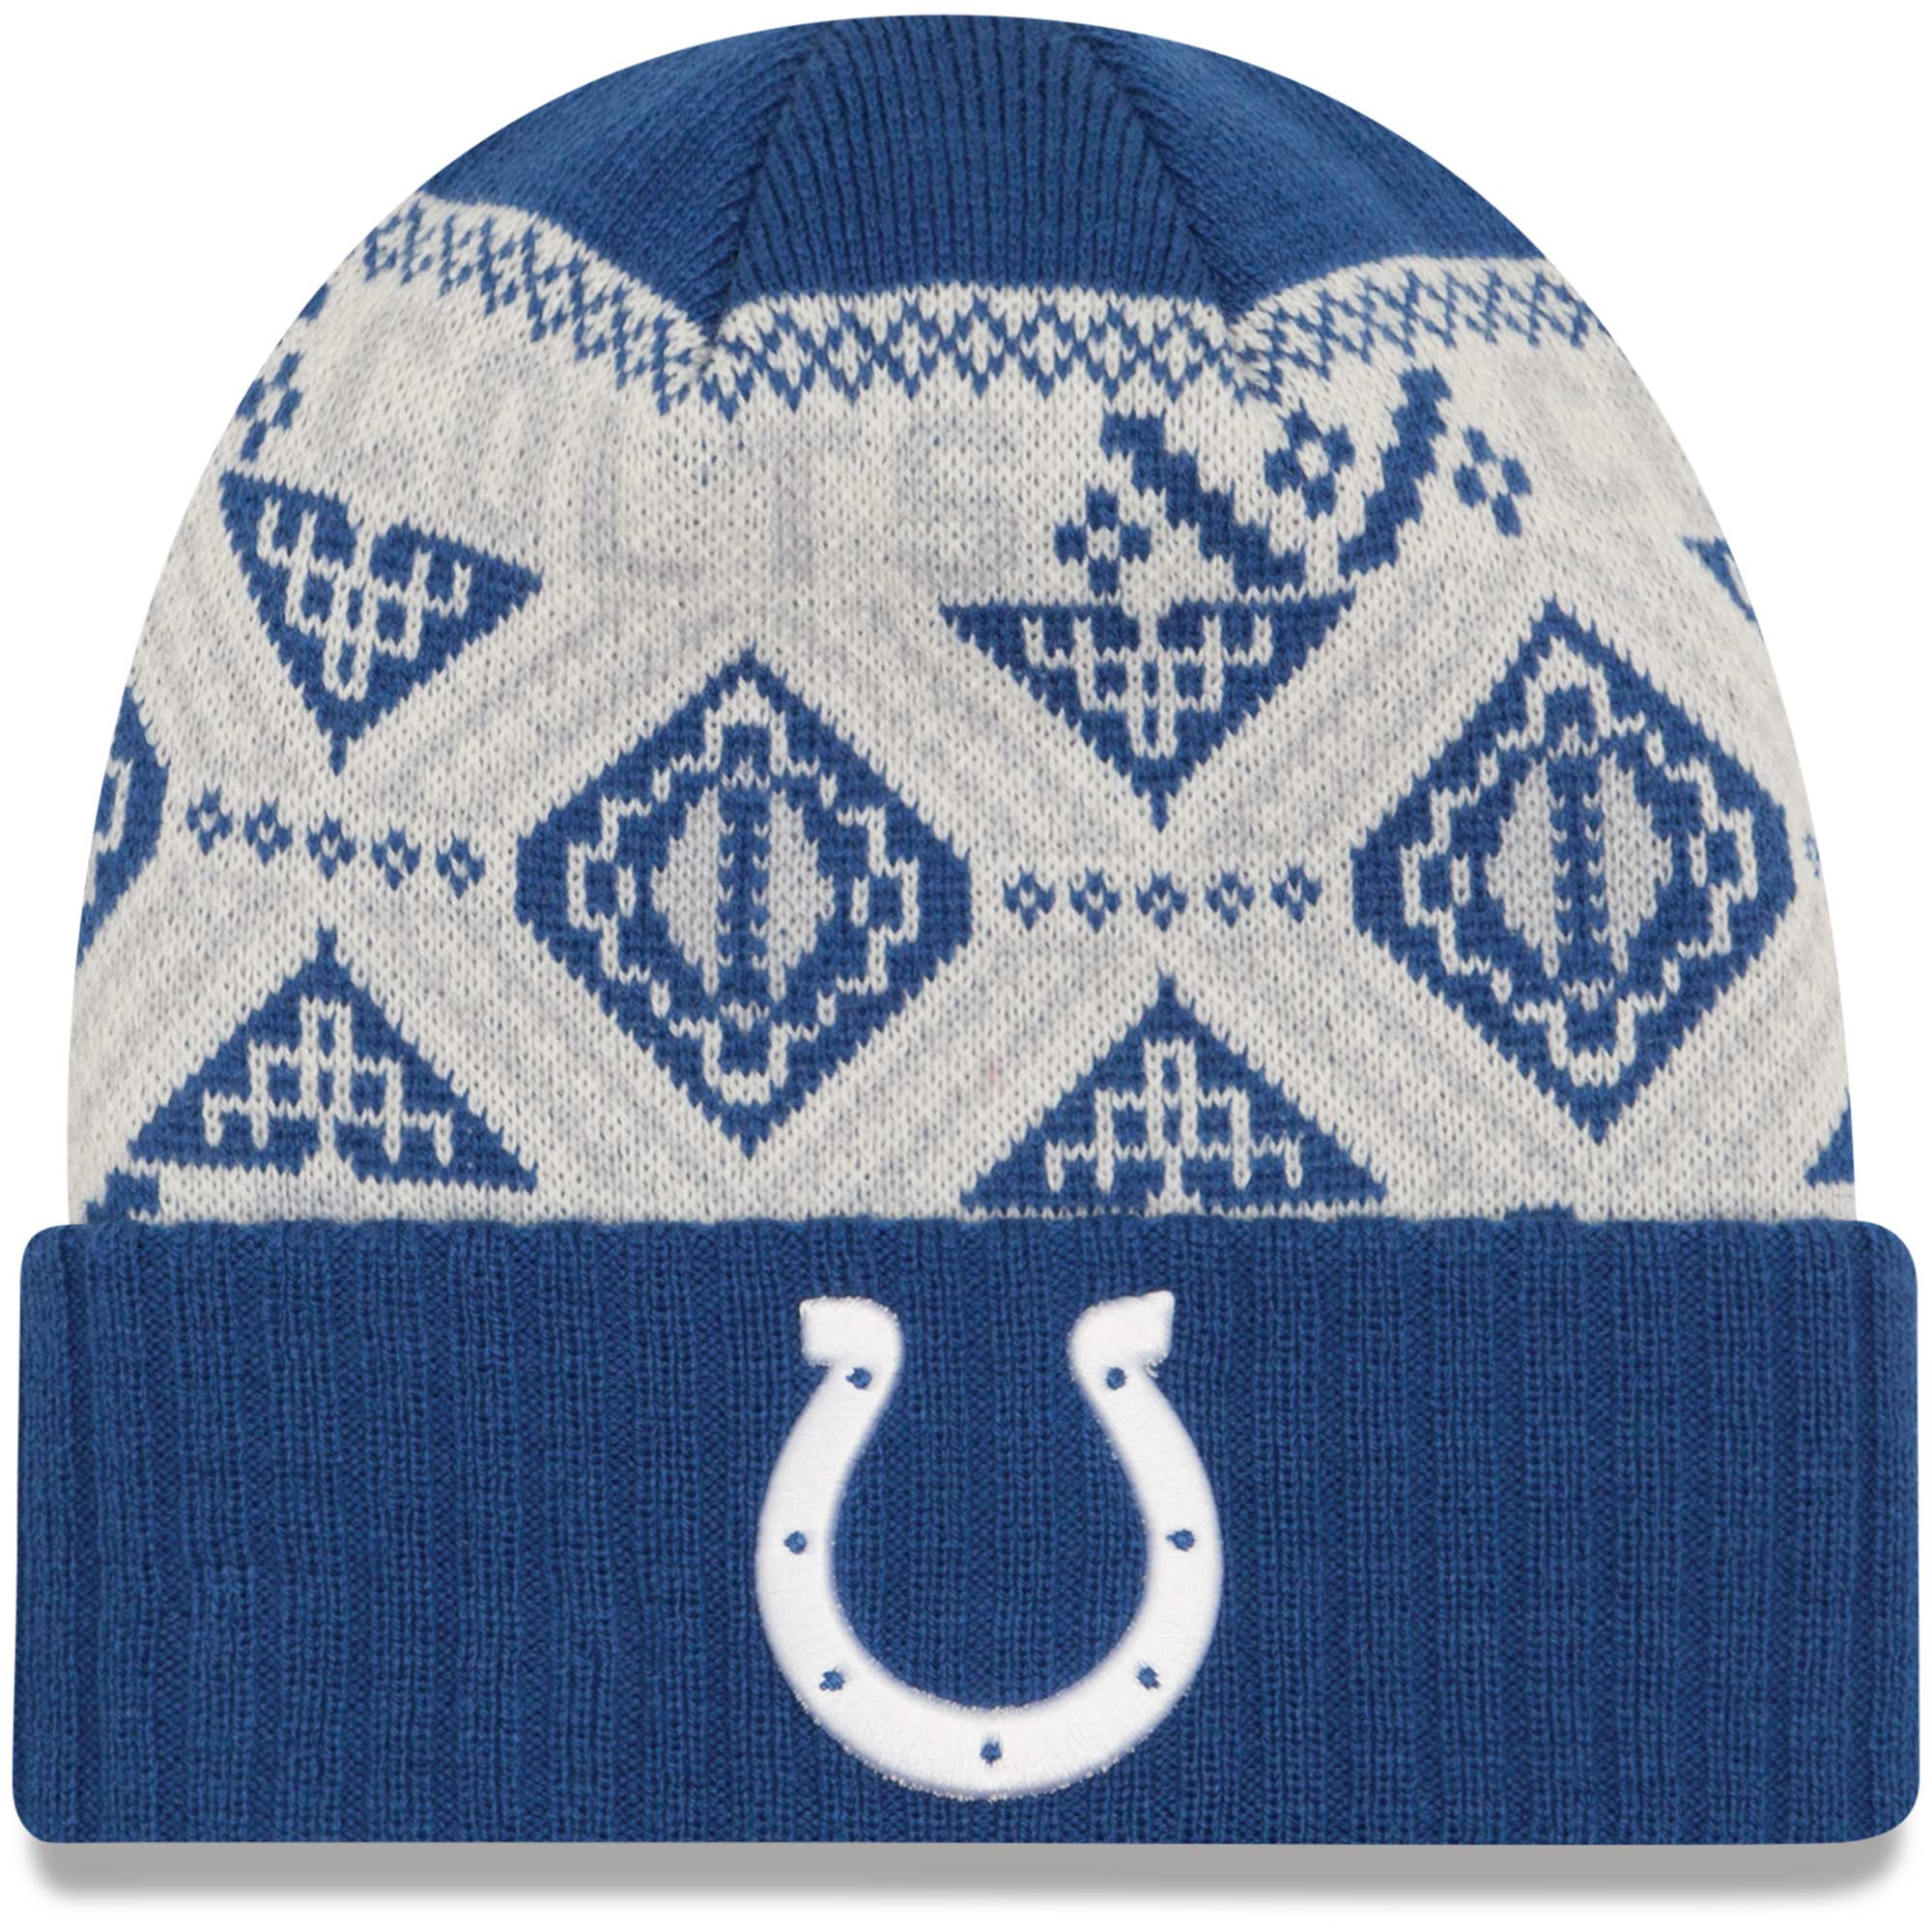 Indianapolis Colts New Era Cozy Cuffed Knit Hat - Royal